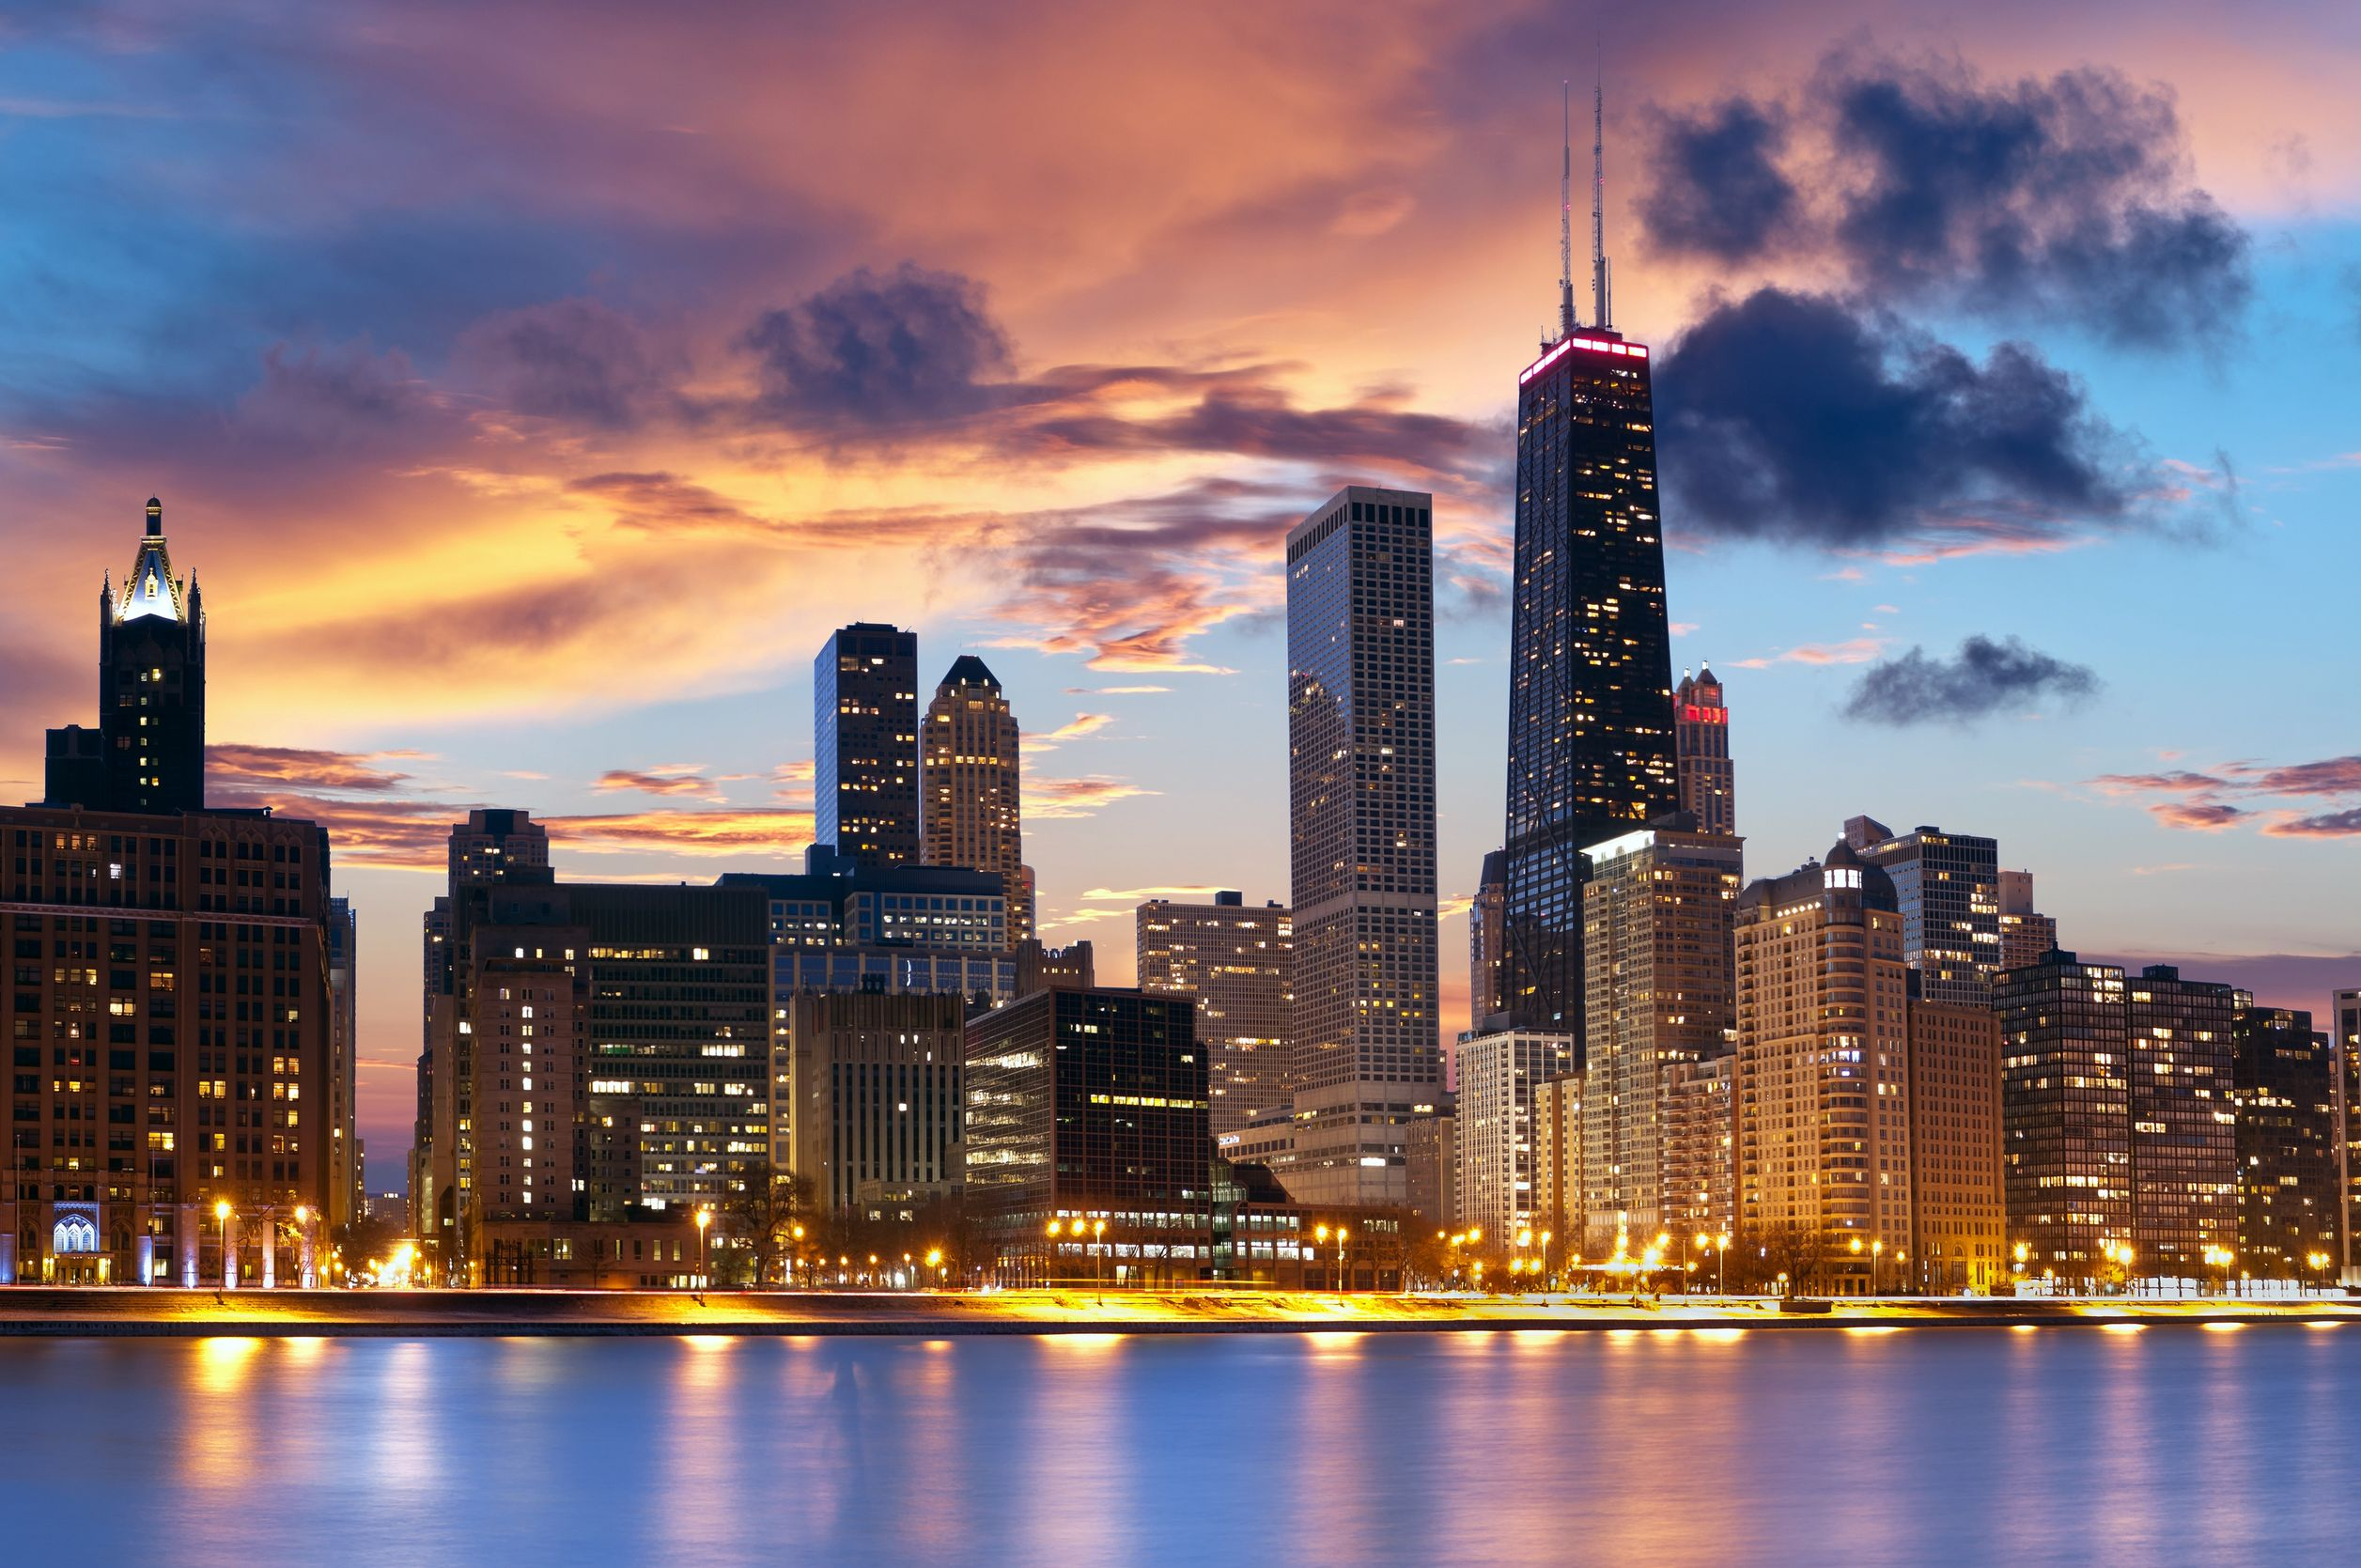 Chicago, the Windy City in Illinois